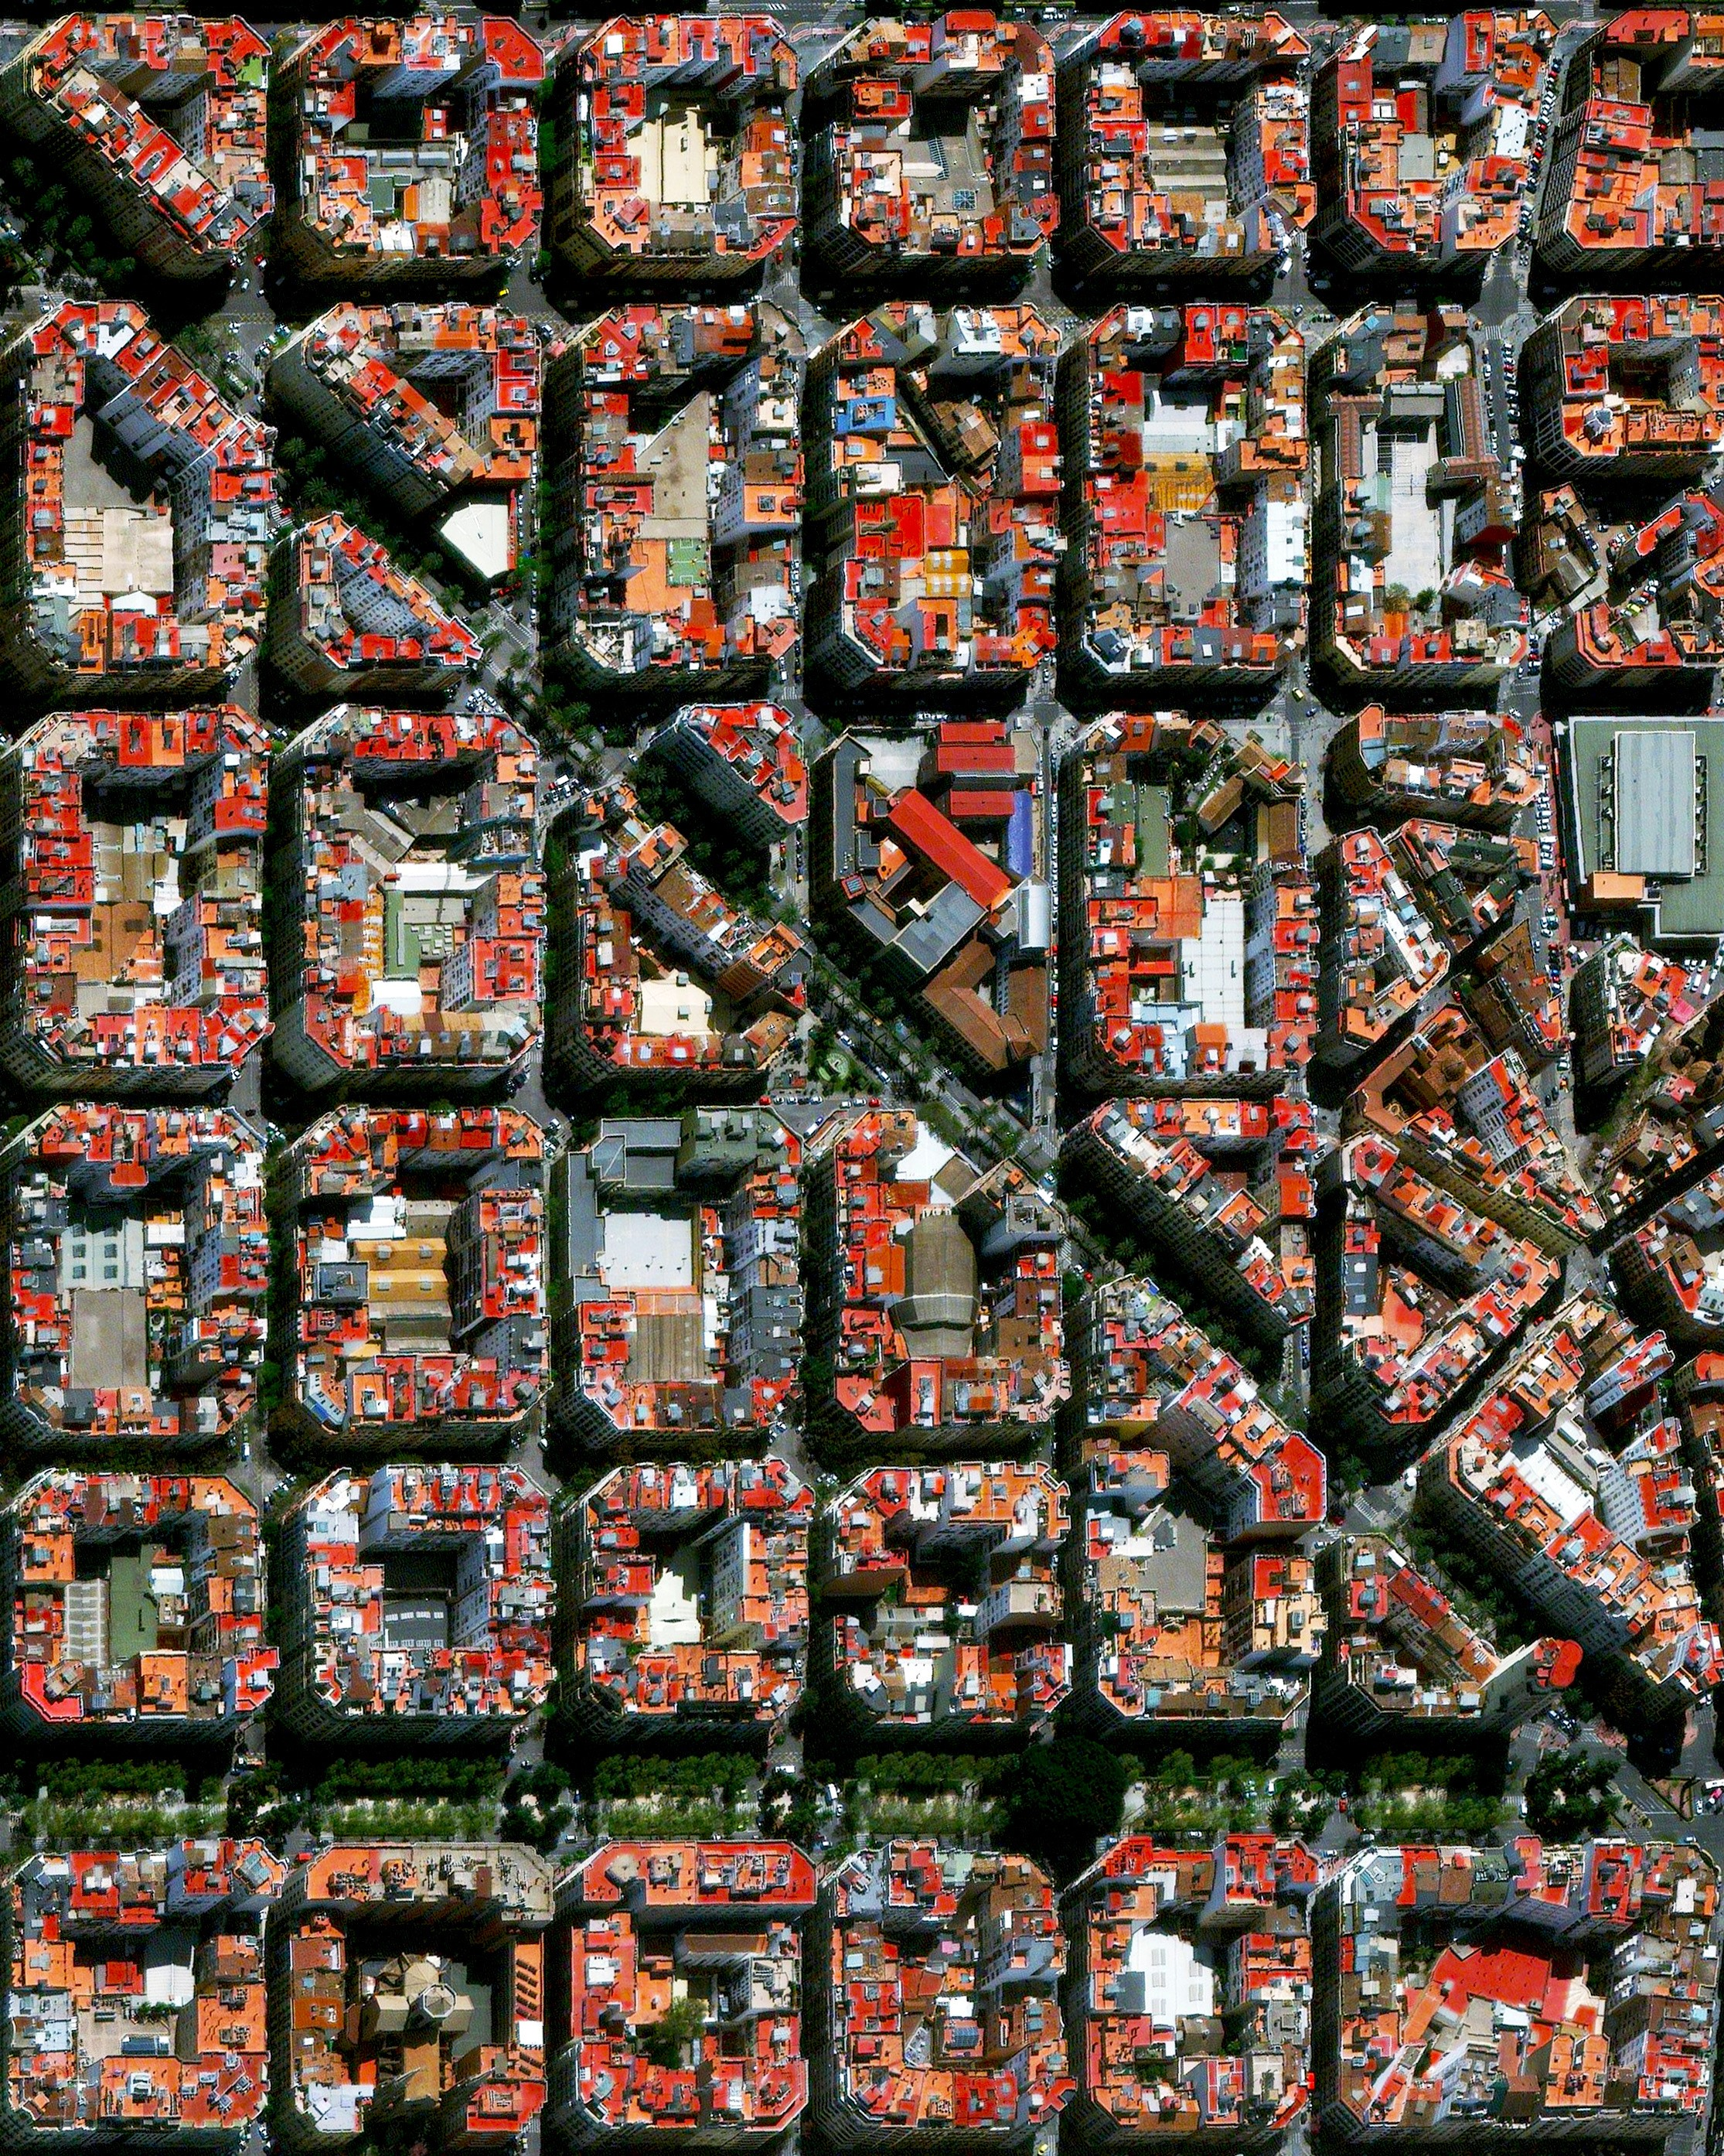 The urban plan of the L'Eixample district in Valencia, Spain, is characterized by long straight streets, a strict grid pattern crossed by wide avenues, and apartments with communal courtyards. A similar layout was used for the district of the same name in Barcelona.  39.464722°, -0.370000°  Source imagery: Maxar Technologies